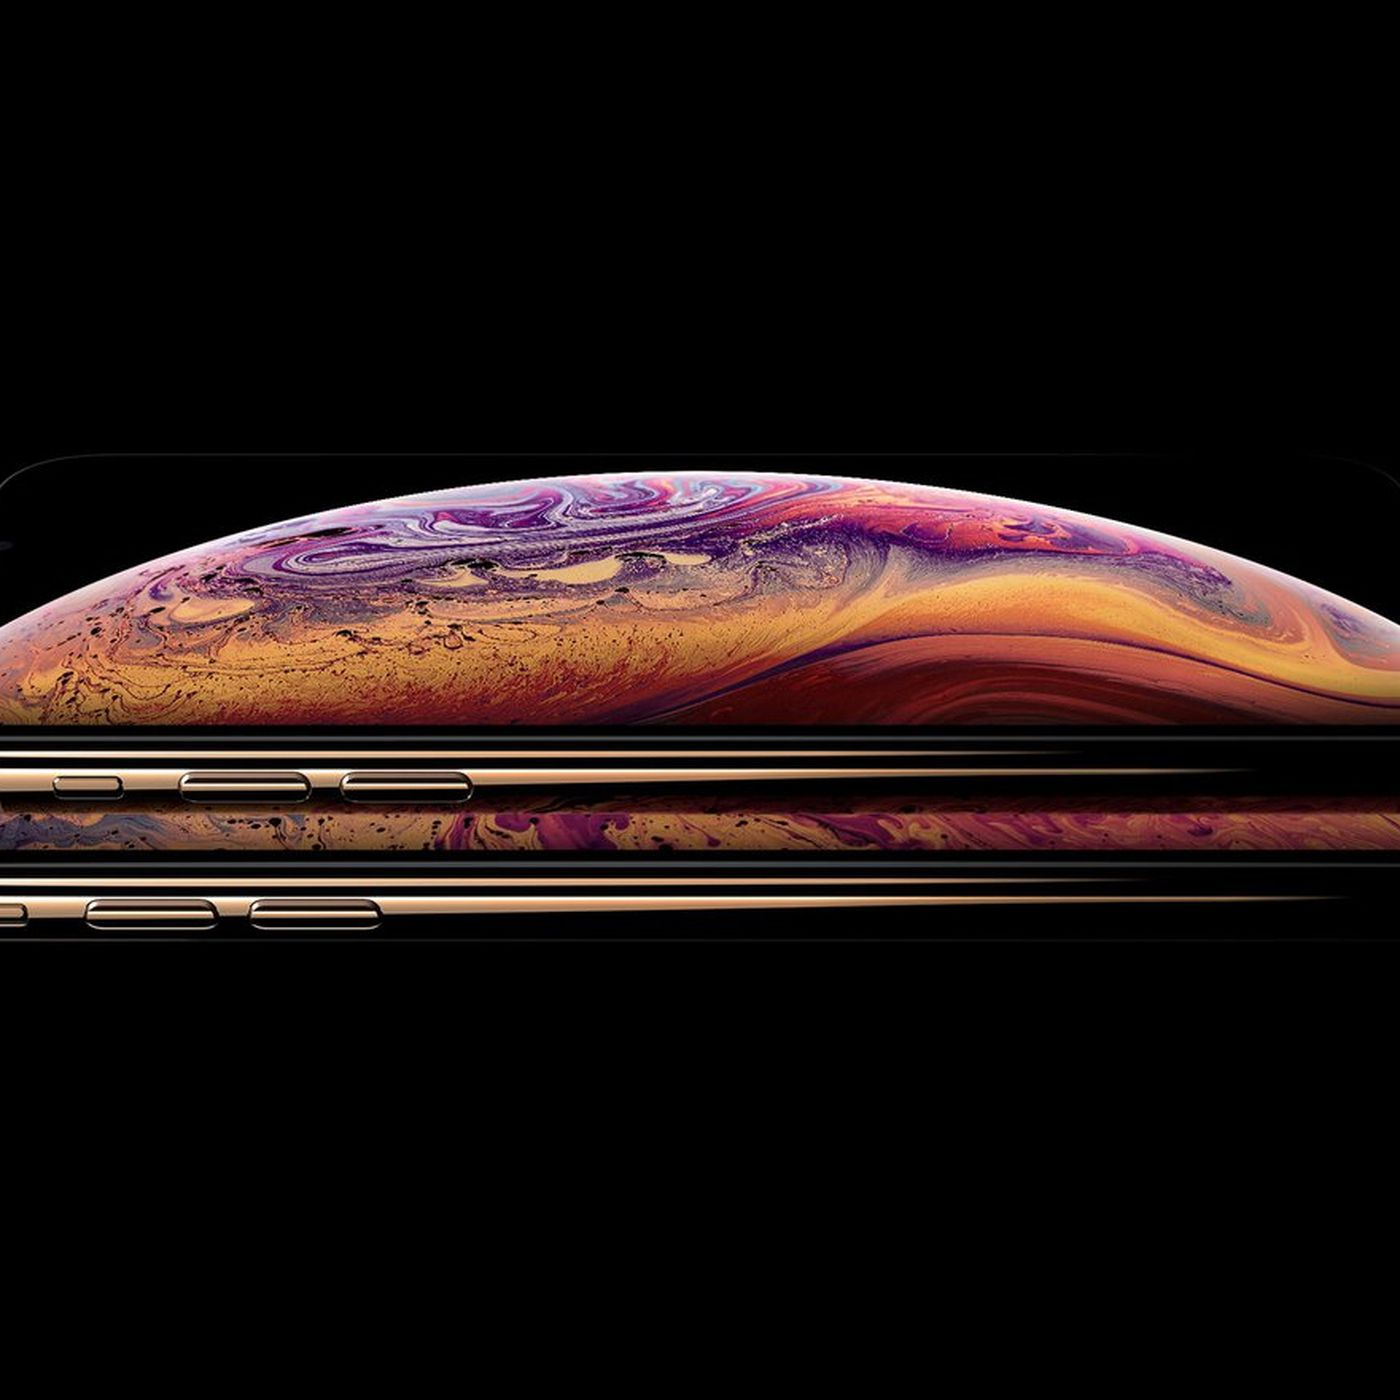 Apple Might Put Oleds In Laptops And Tablets To Make Up For Slowing